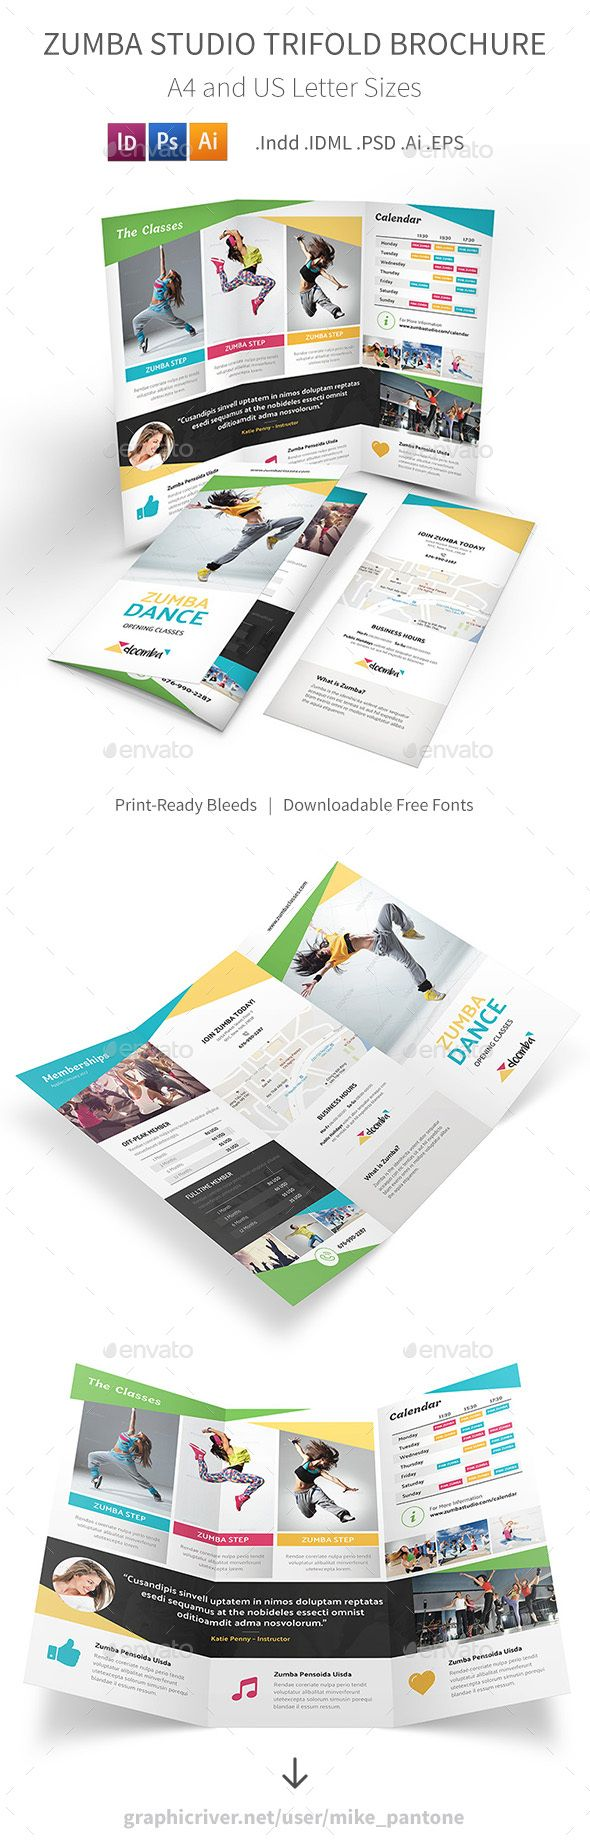 Zumba Studio Trifold Brochure Brochures Brochure Template And - Photoshop tri fold brochure template free